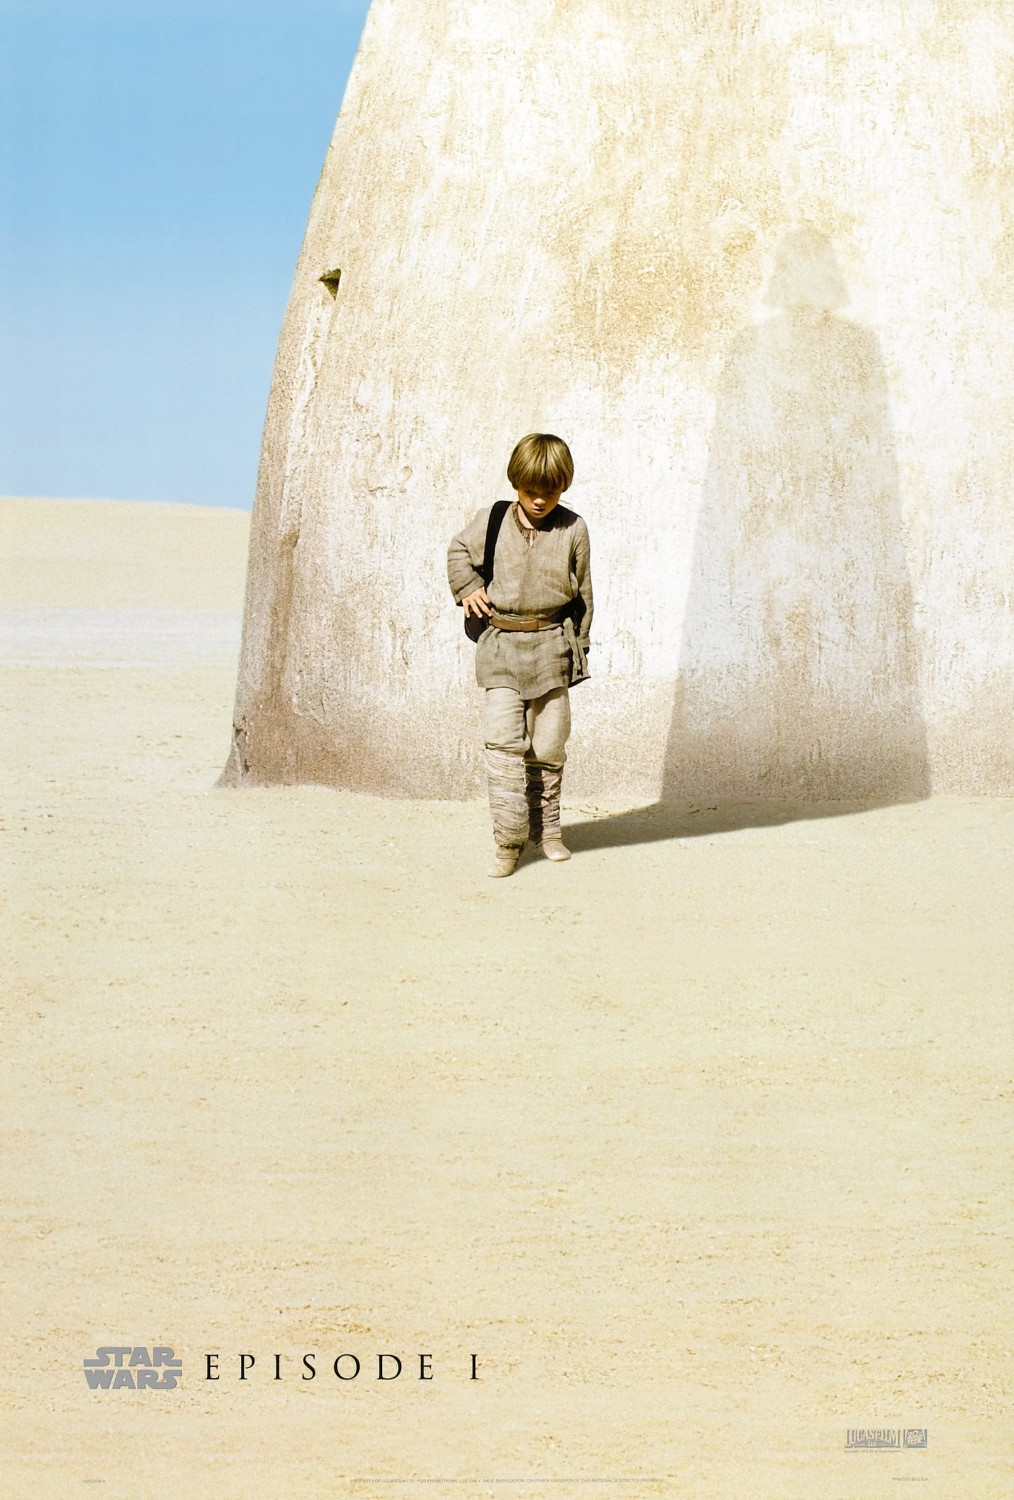 Star Wars Phantom Menace teaser poster